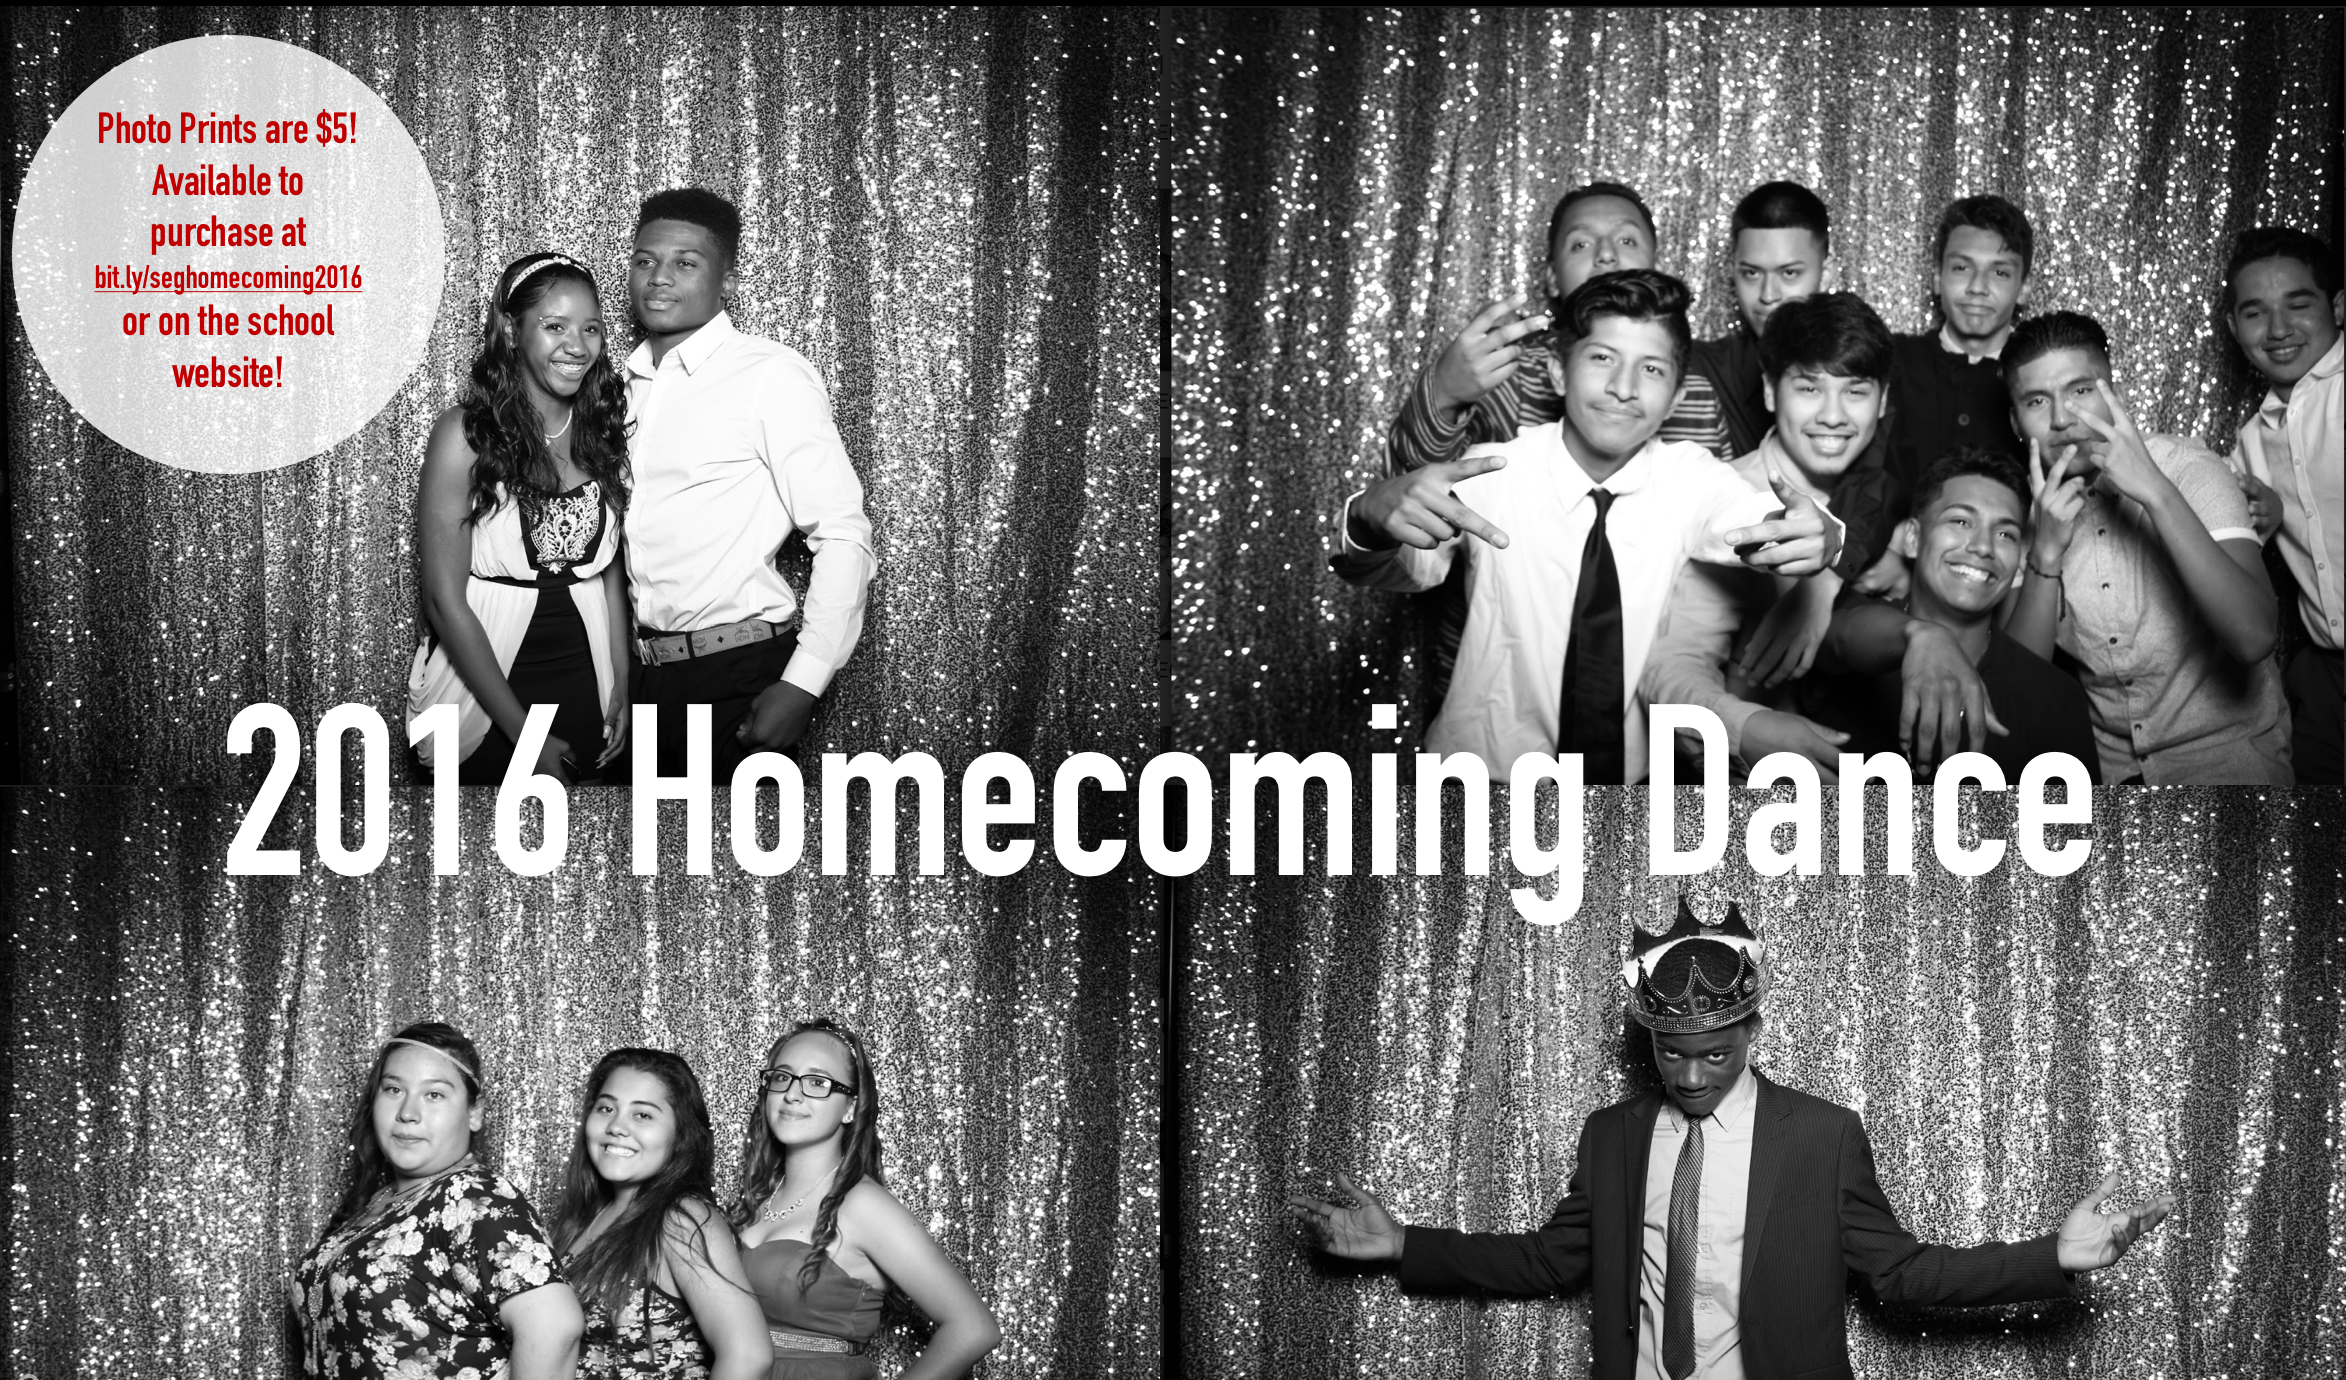 2016 Homecoming Dance Photos Now Available for Purchase!